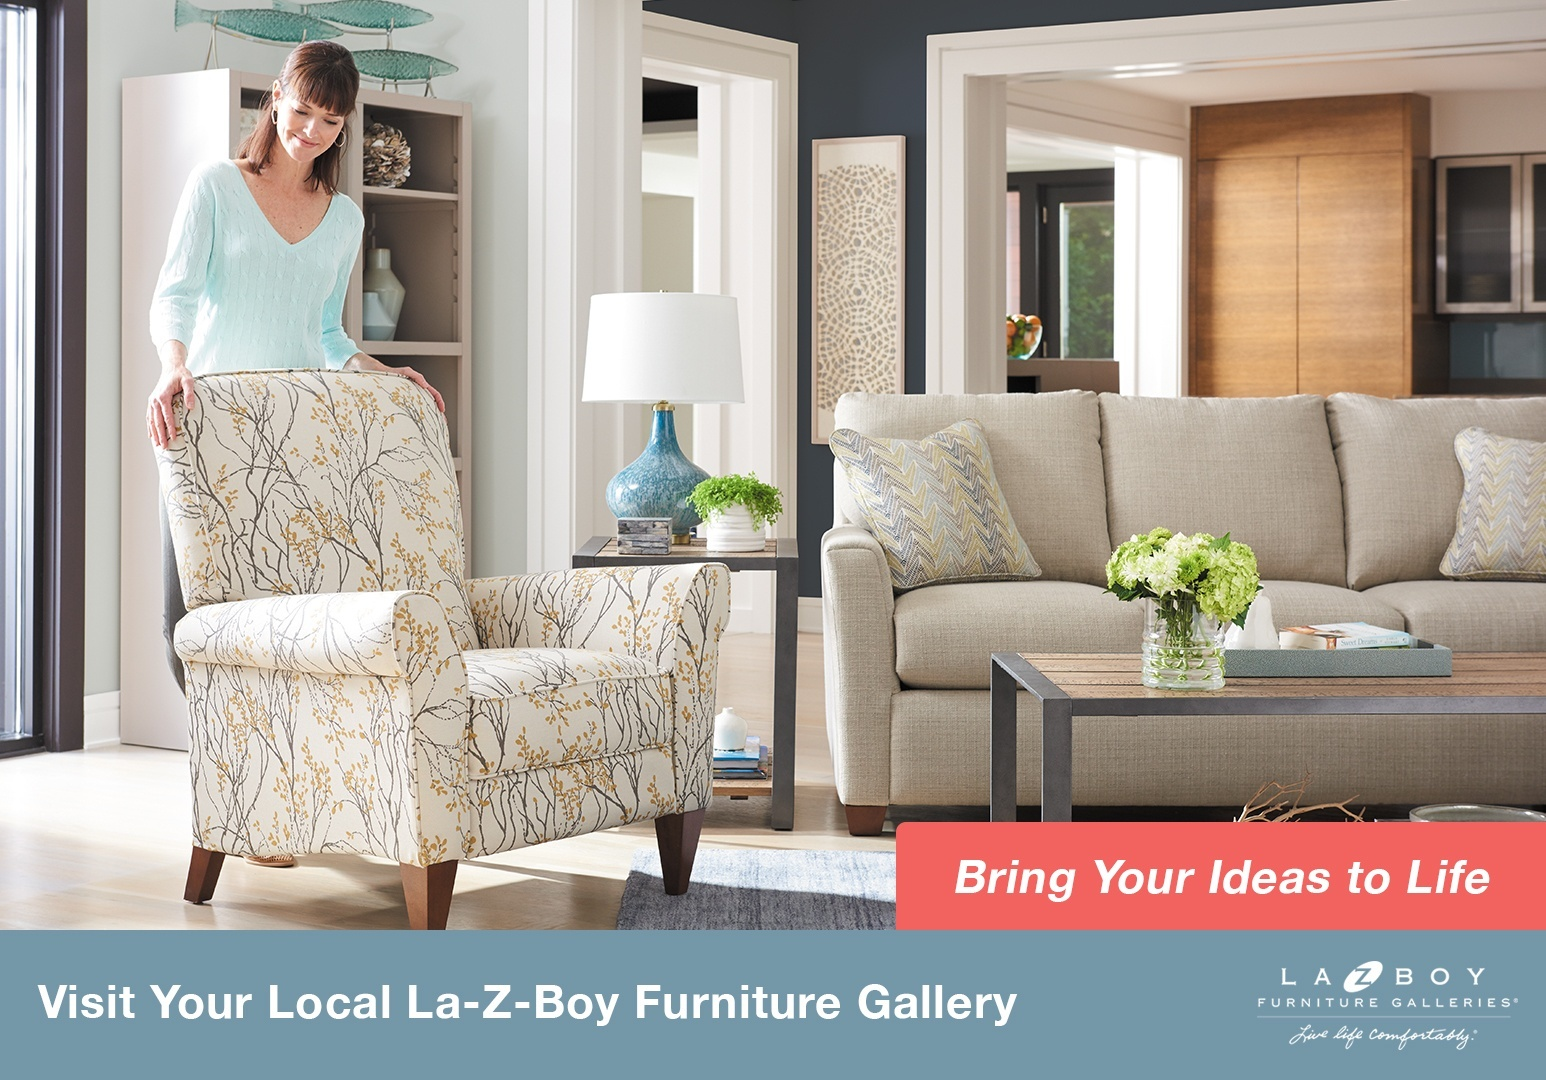 Visit Your Local La-Z-Boy Furniture Gallery